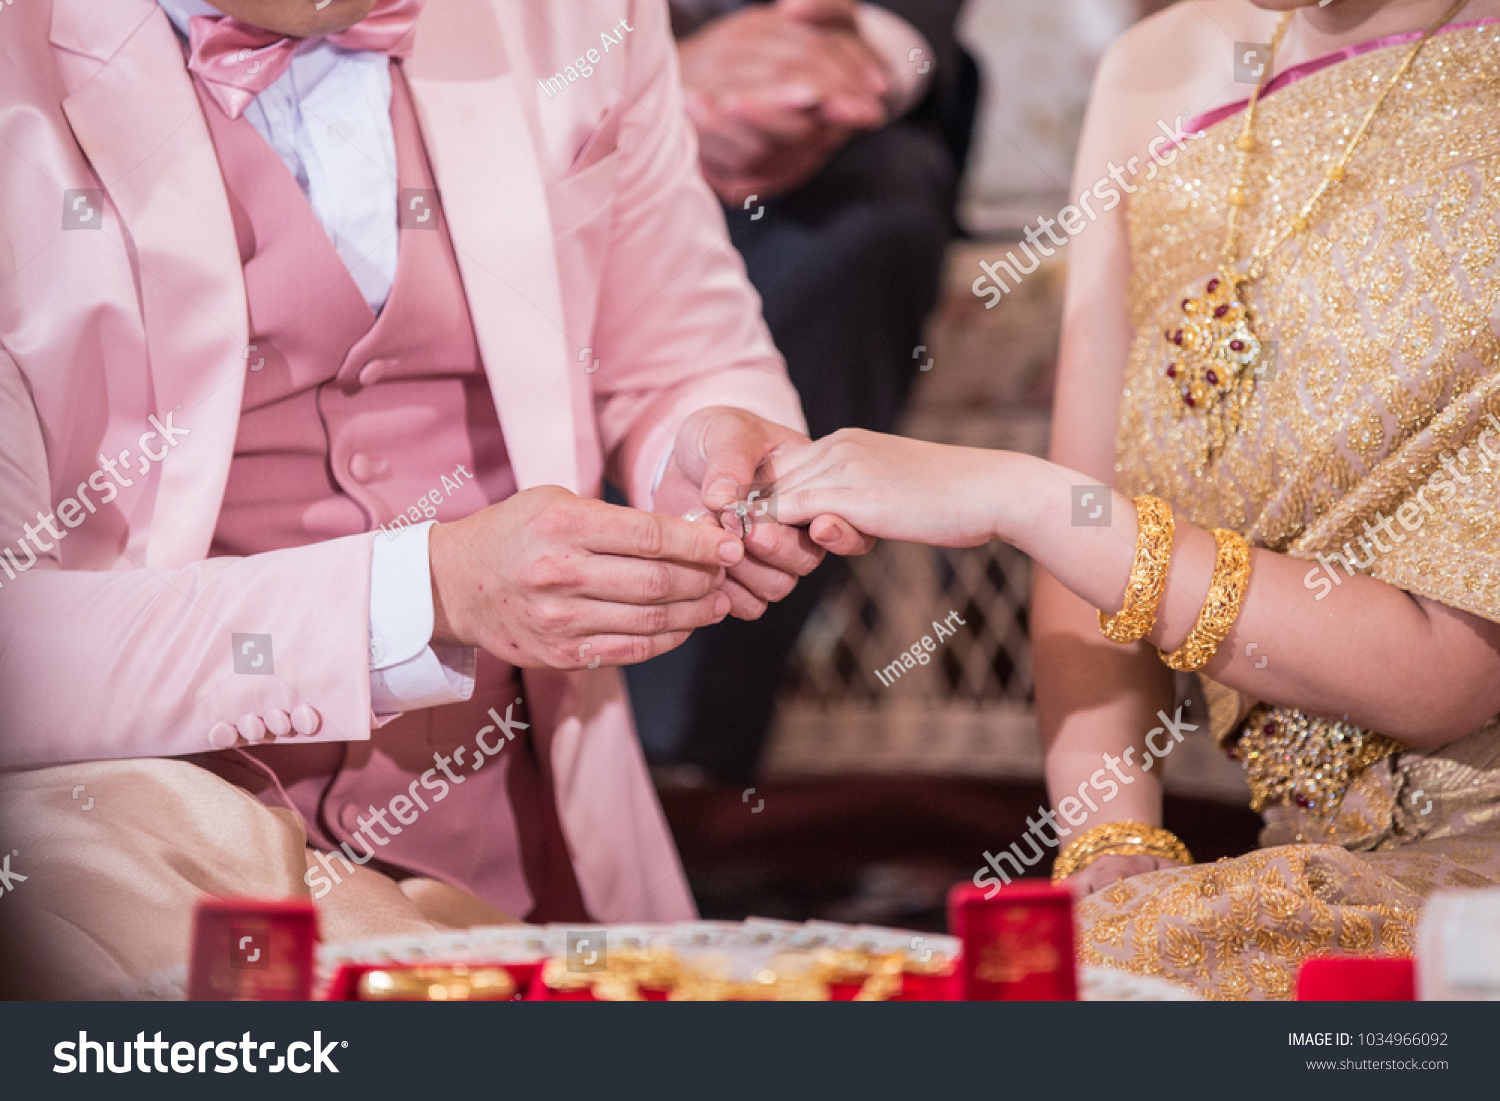 Men Beautiful Gold Dress Wearing Ring Stock Photo (Royalty Free ...